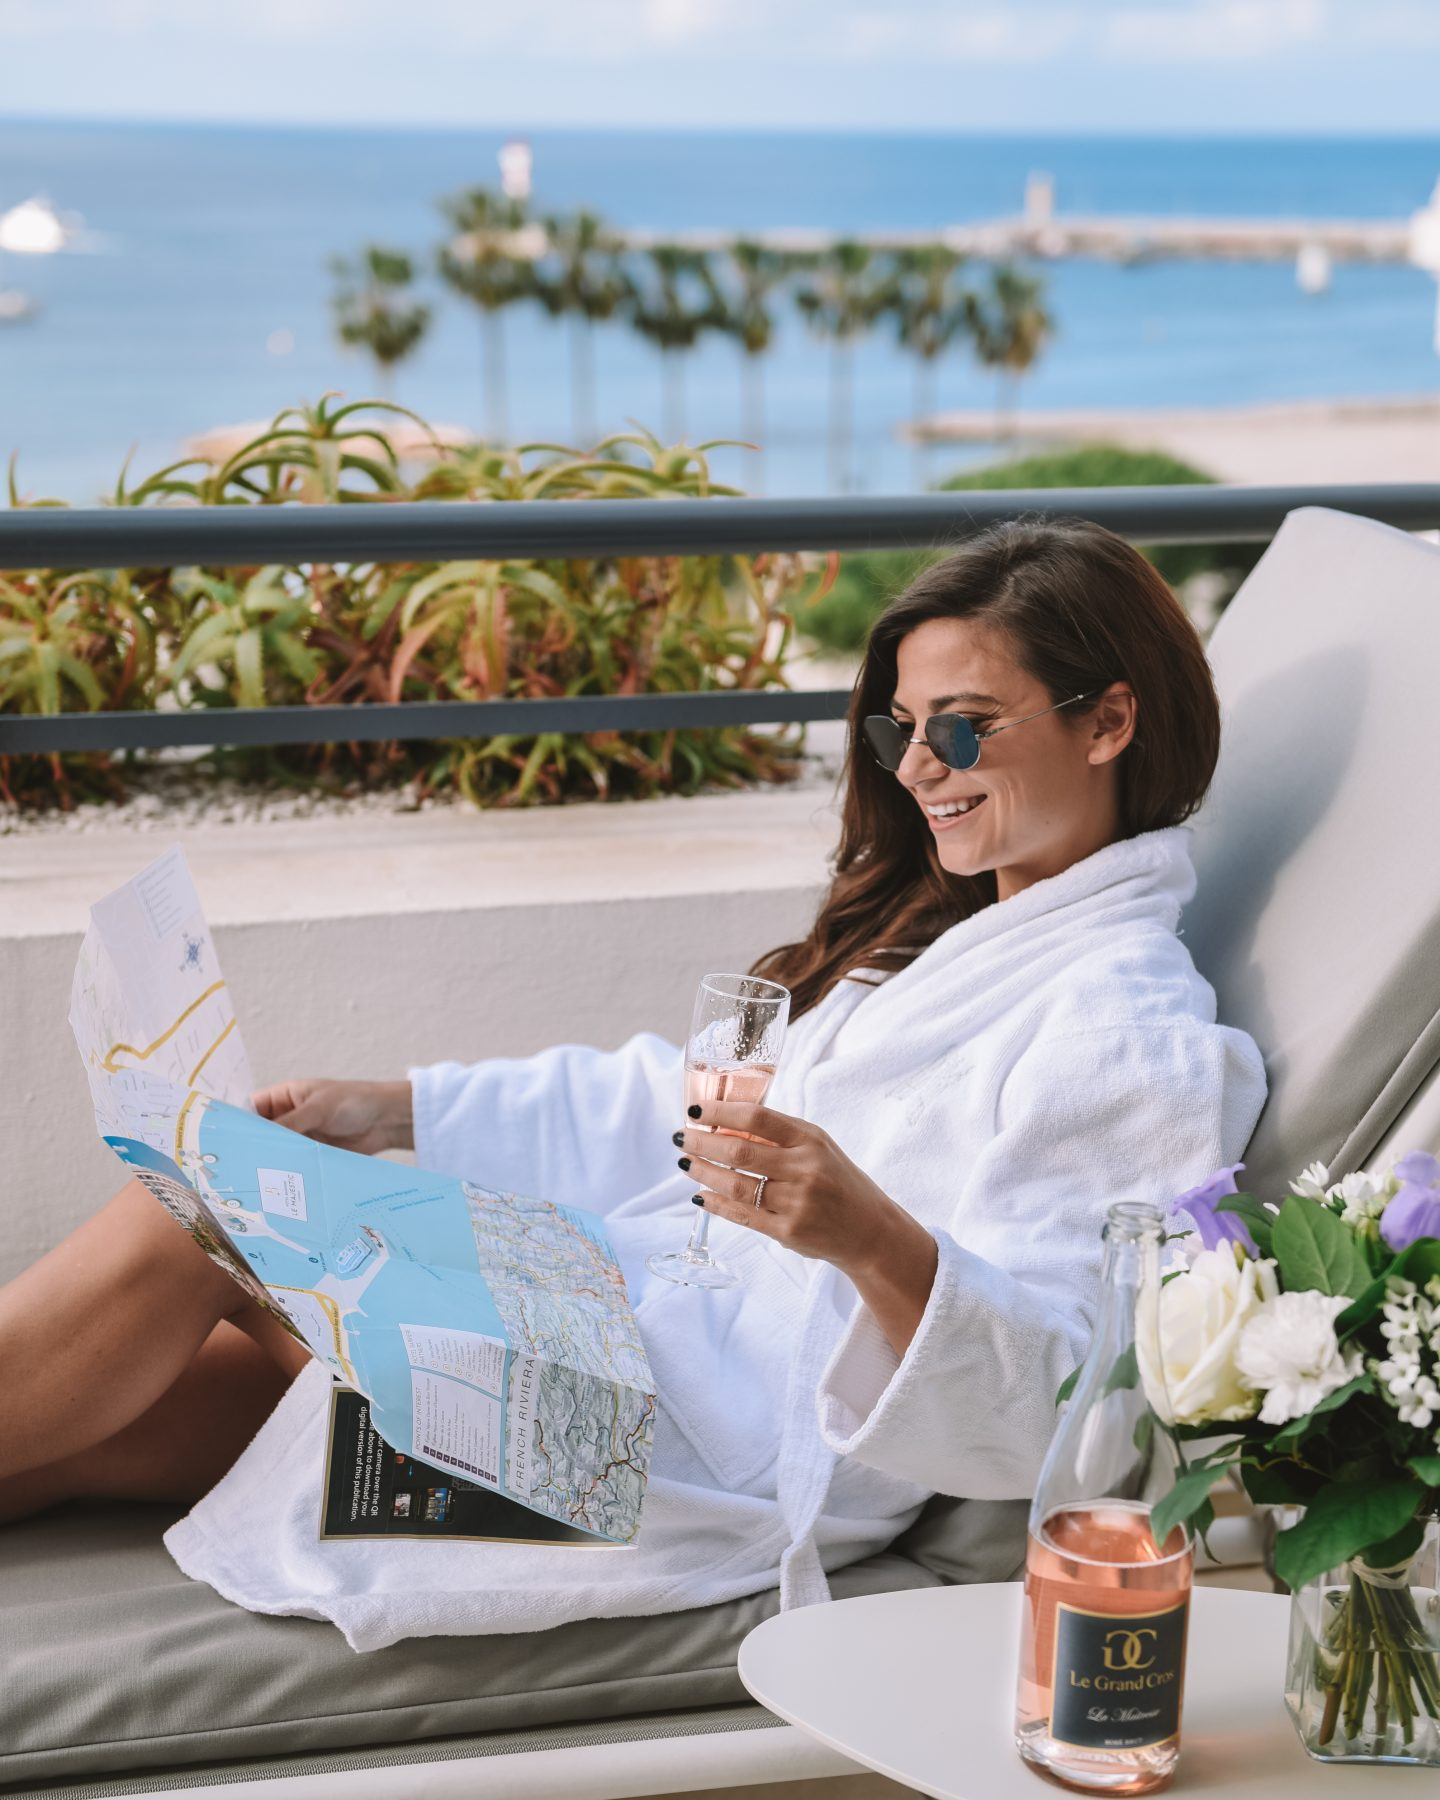 Hotel Majestic Barriere Cannes Experience